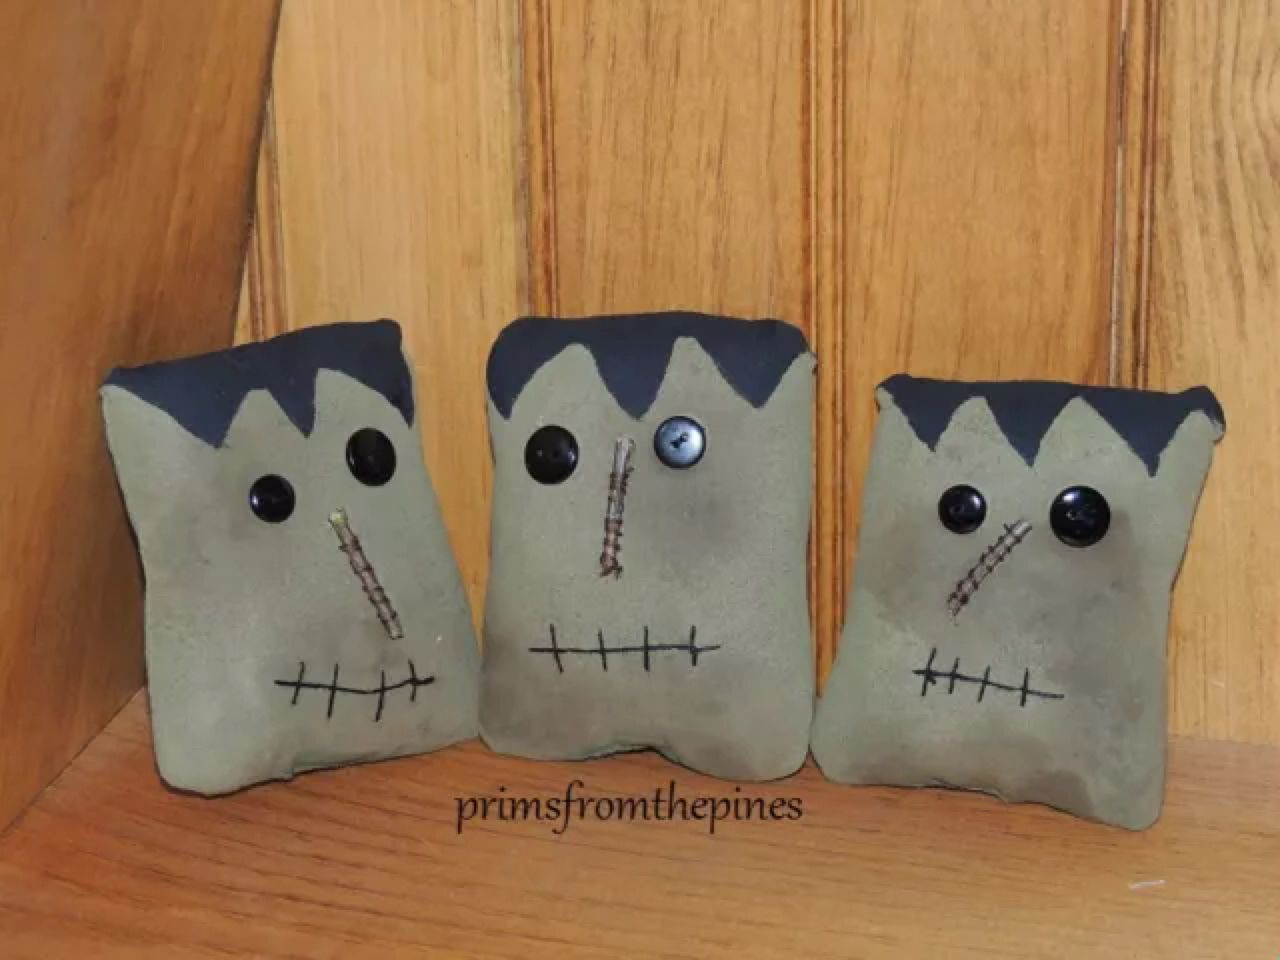 Pin by Gwen Milledge on Primitive Ornies Pinterest Halloween - Pinterest Halloween Decorations